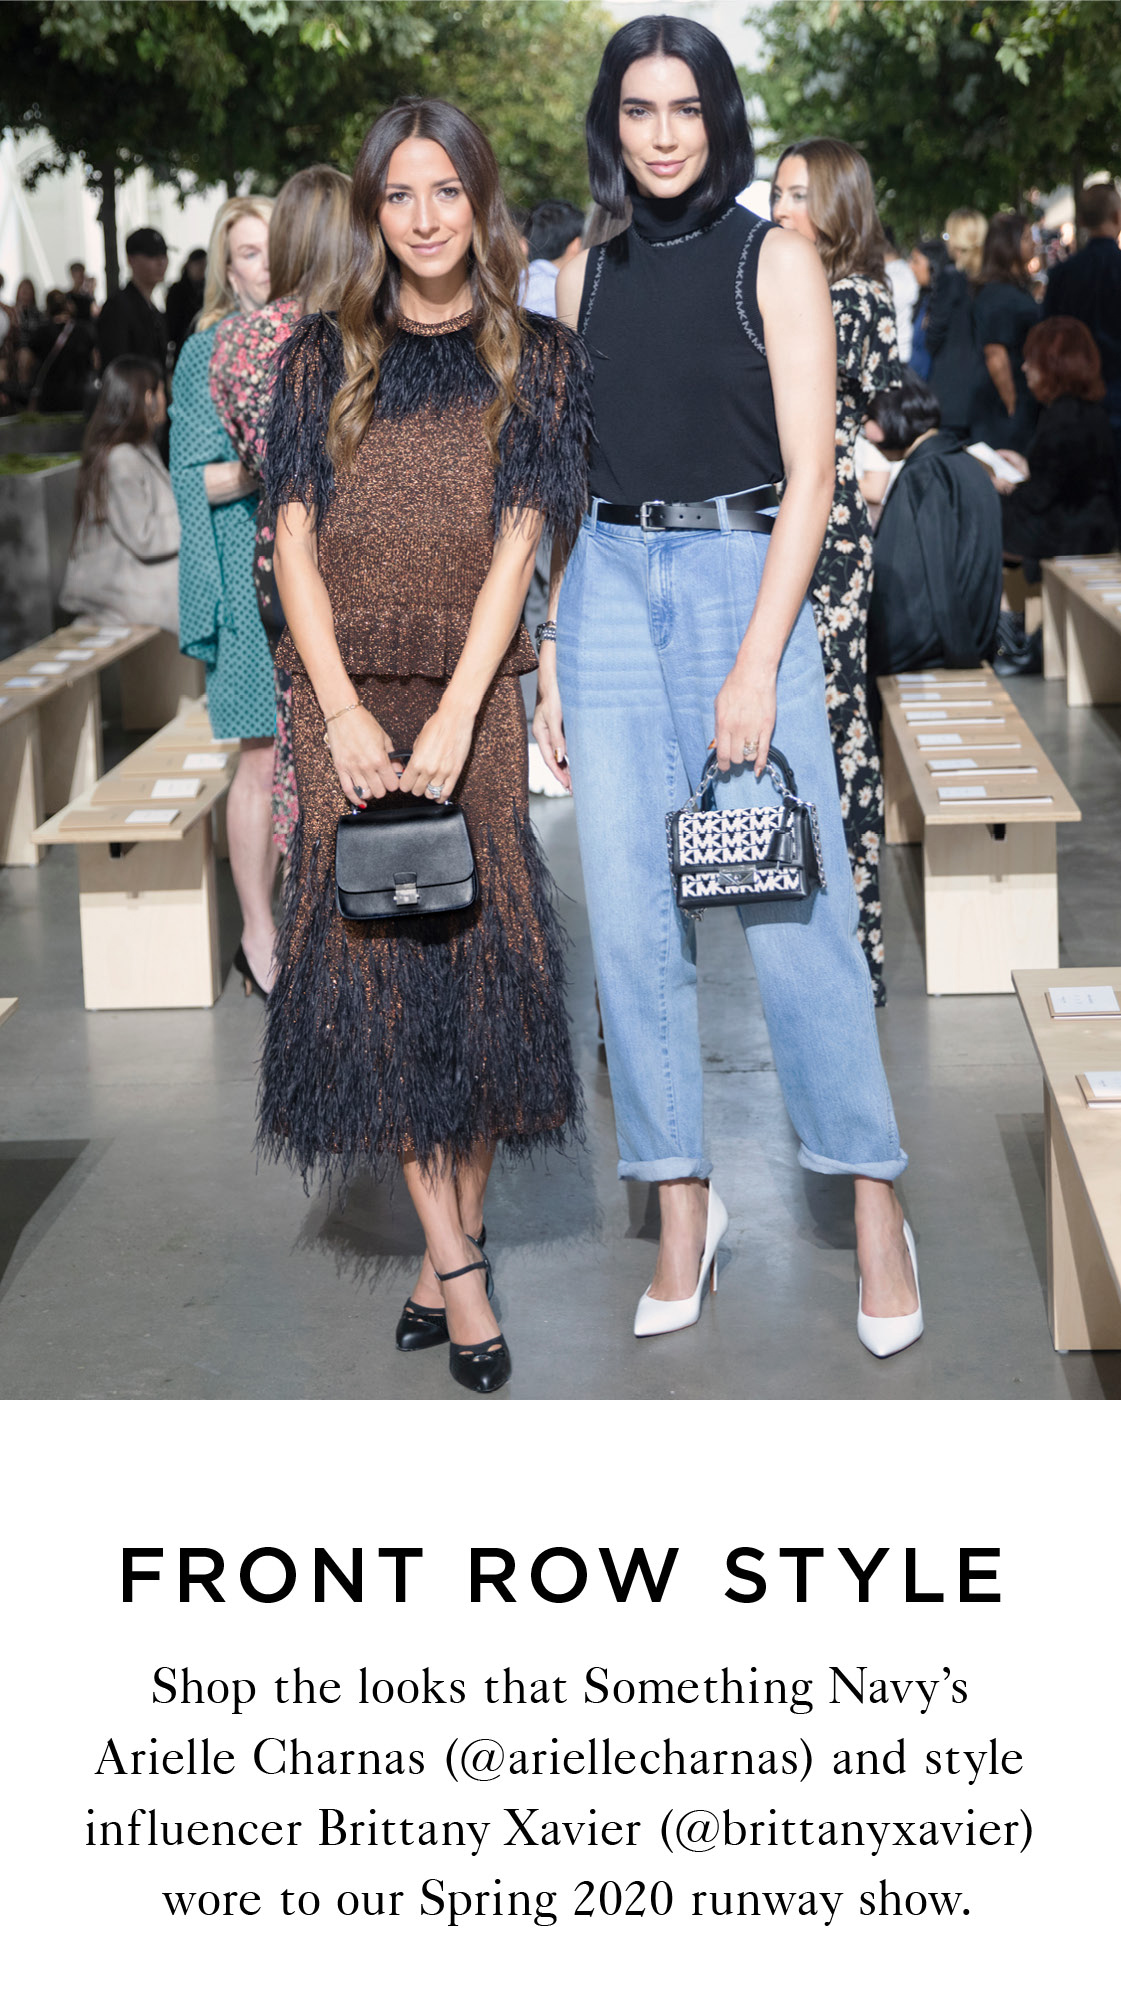 FRONT ROW STYLE Shop the looks Something Navy's Arielle Charnas (@ariellecharnas) and style influencer Brittany Xavier (@brittanyxavier) wore to our Spring 2020 runway show.